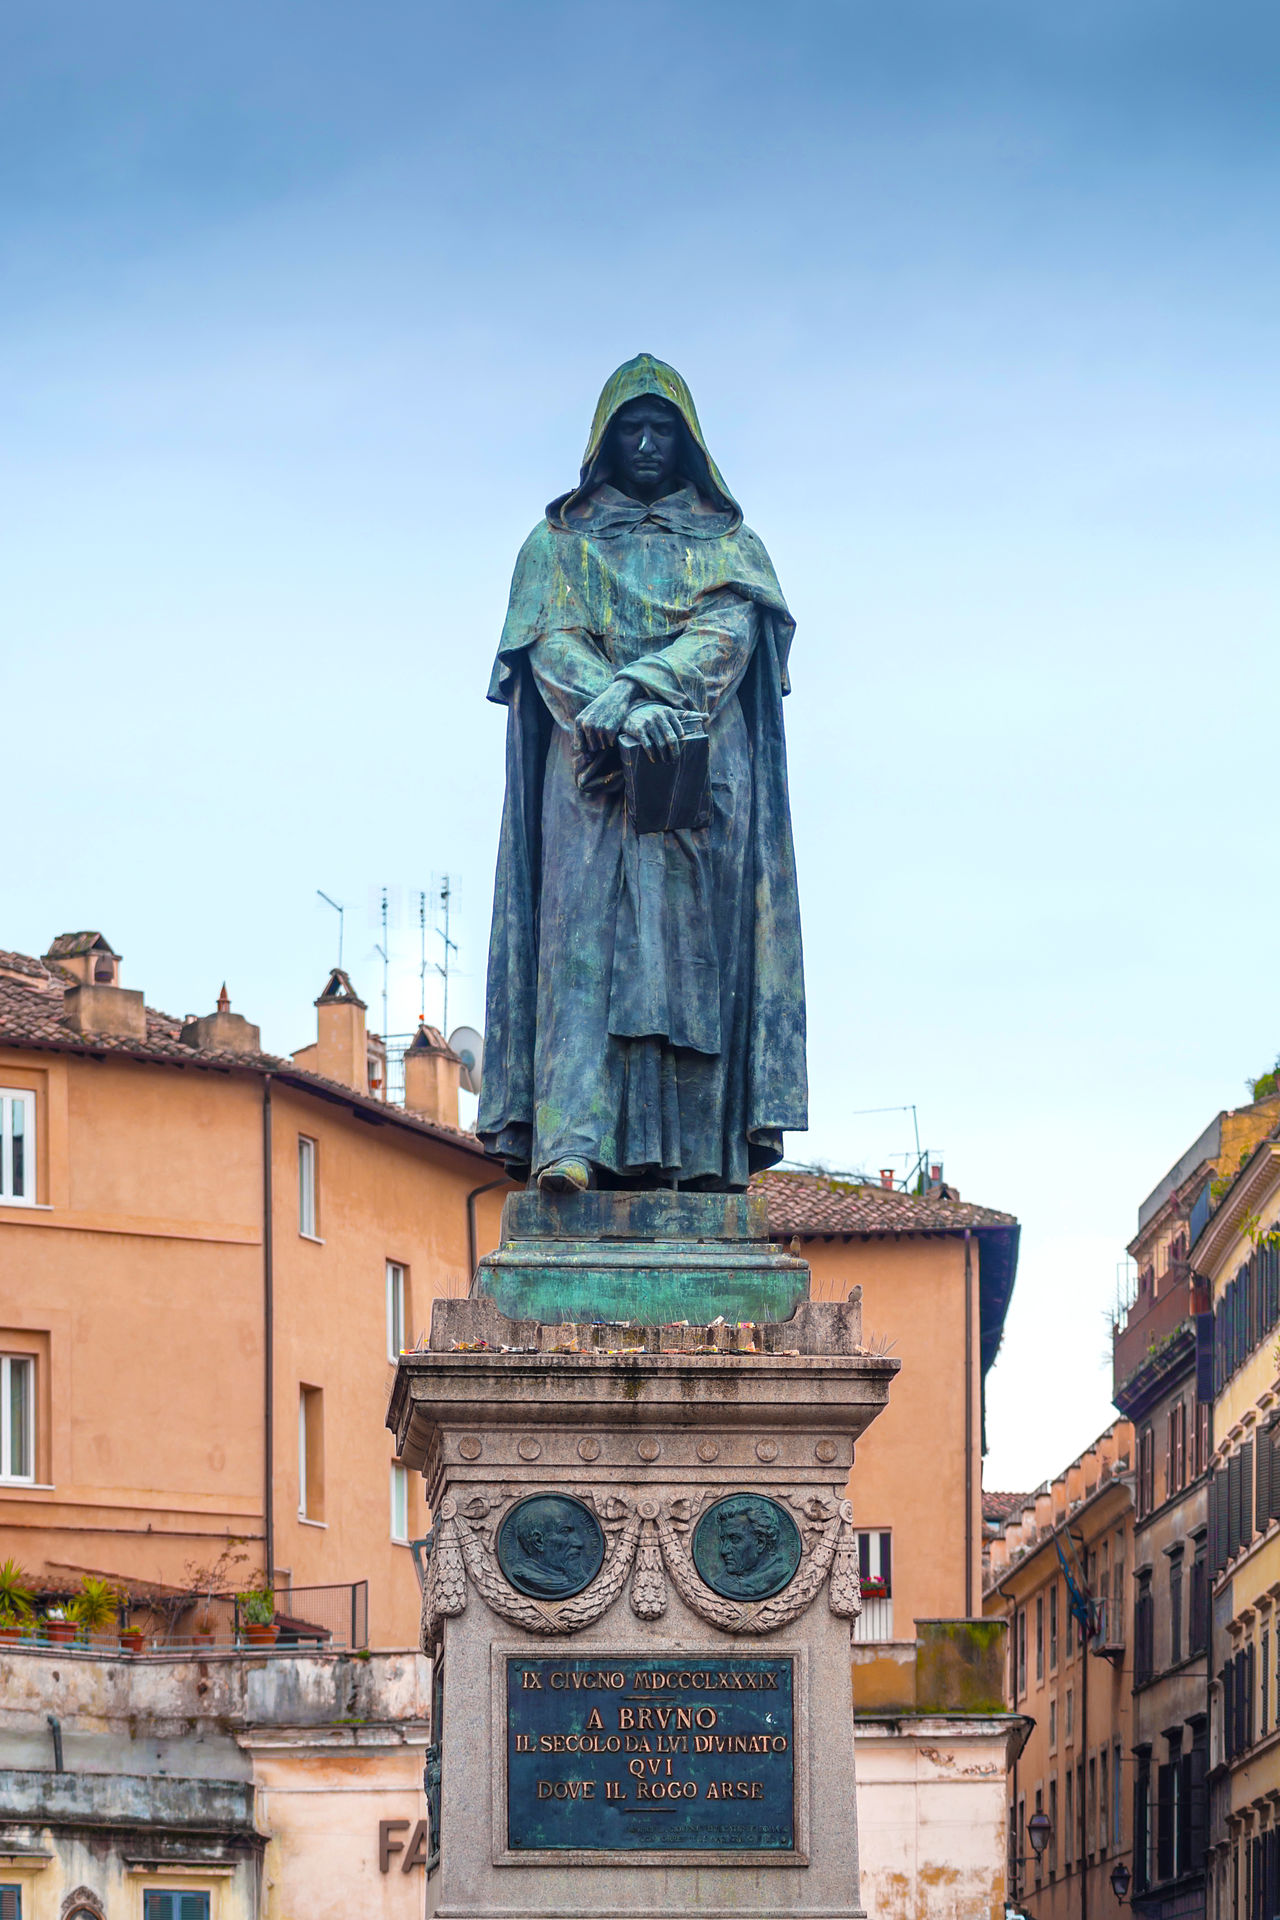 Giordano Bruno was an Italian Dominican friar, philosopher, mathematician, poet, and astrologer.He is celebrated for his cosmological theories, which went even further than the then novel Copernican model Architecture Art Blue Built Structure Campo De' Fiori Capital Cities  City Creativity Day Famous Place Giordano Bruno Heretic Low Angle View No People Outdoors Rome Sculpture Sky Statue Tourism Travel Destinations